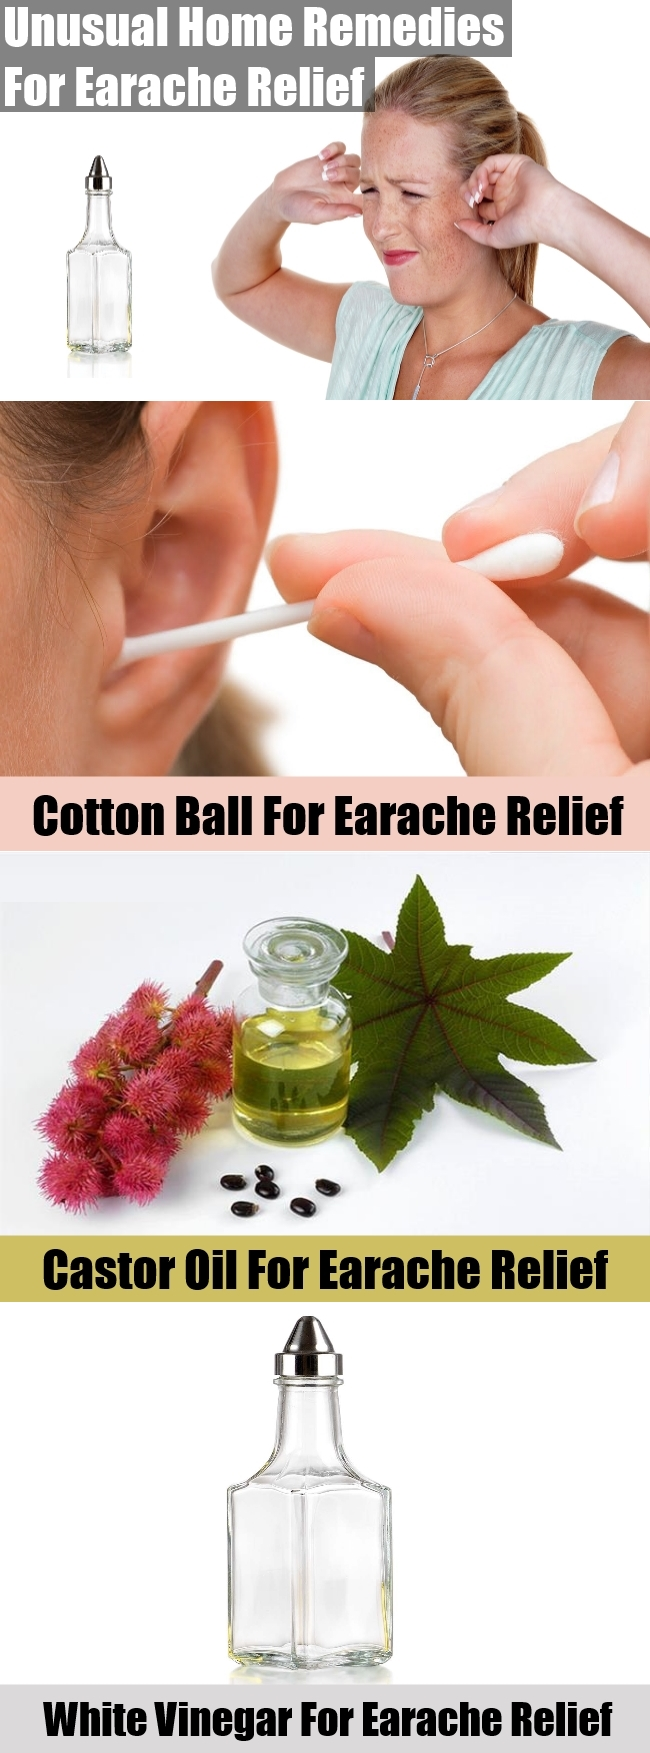 Unusual Home Remedies for Earache Relief